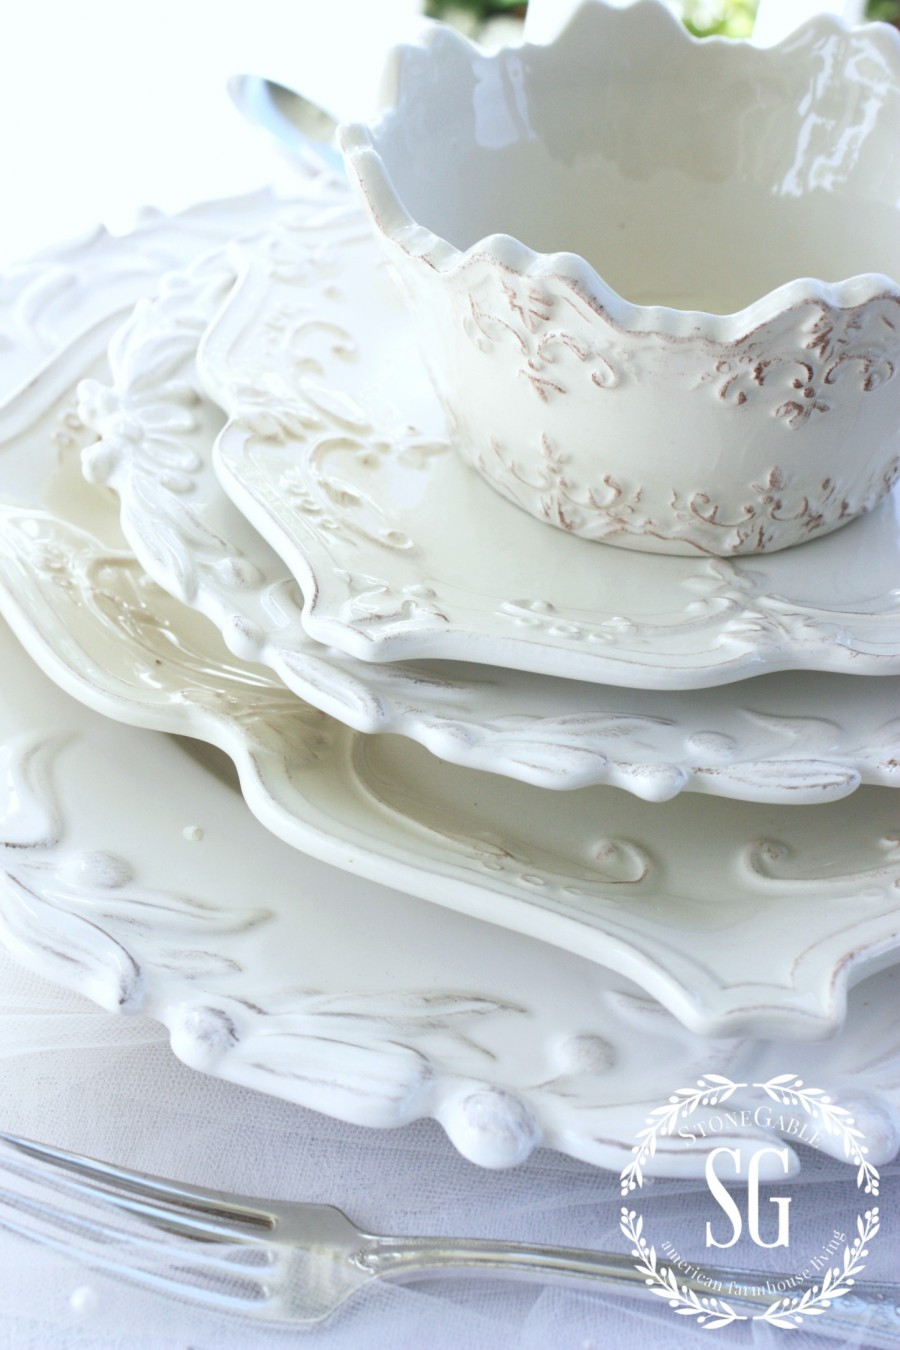 5 QUESTIONS YOU ASKED STONEGABLE-white dishes-stonegableblog.com